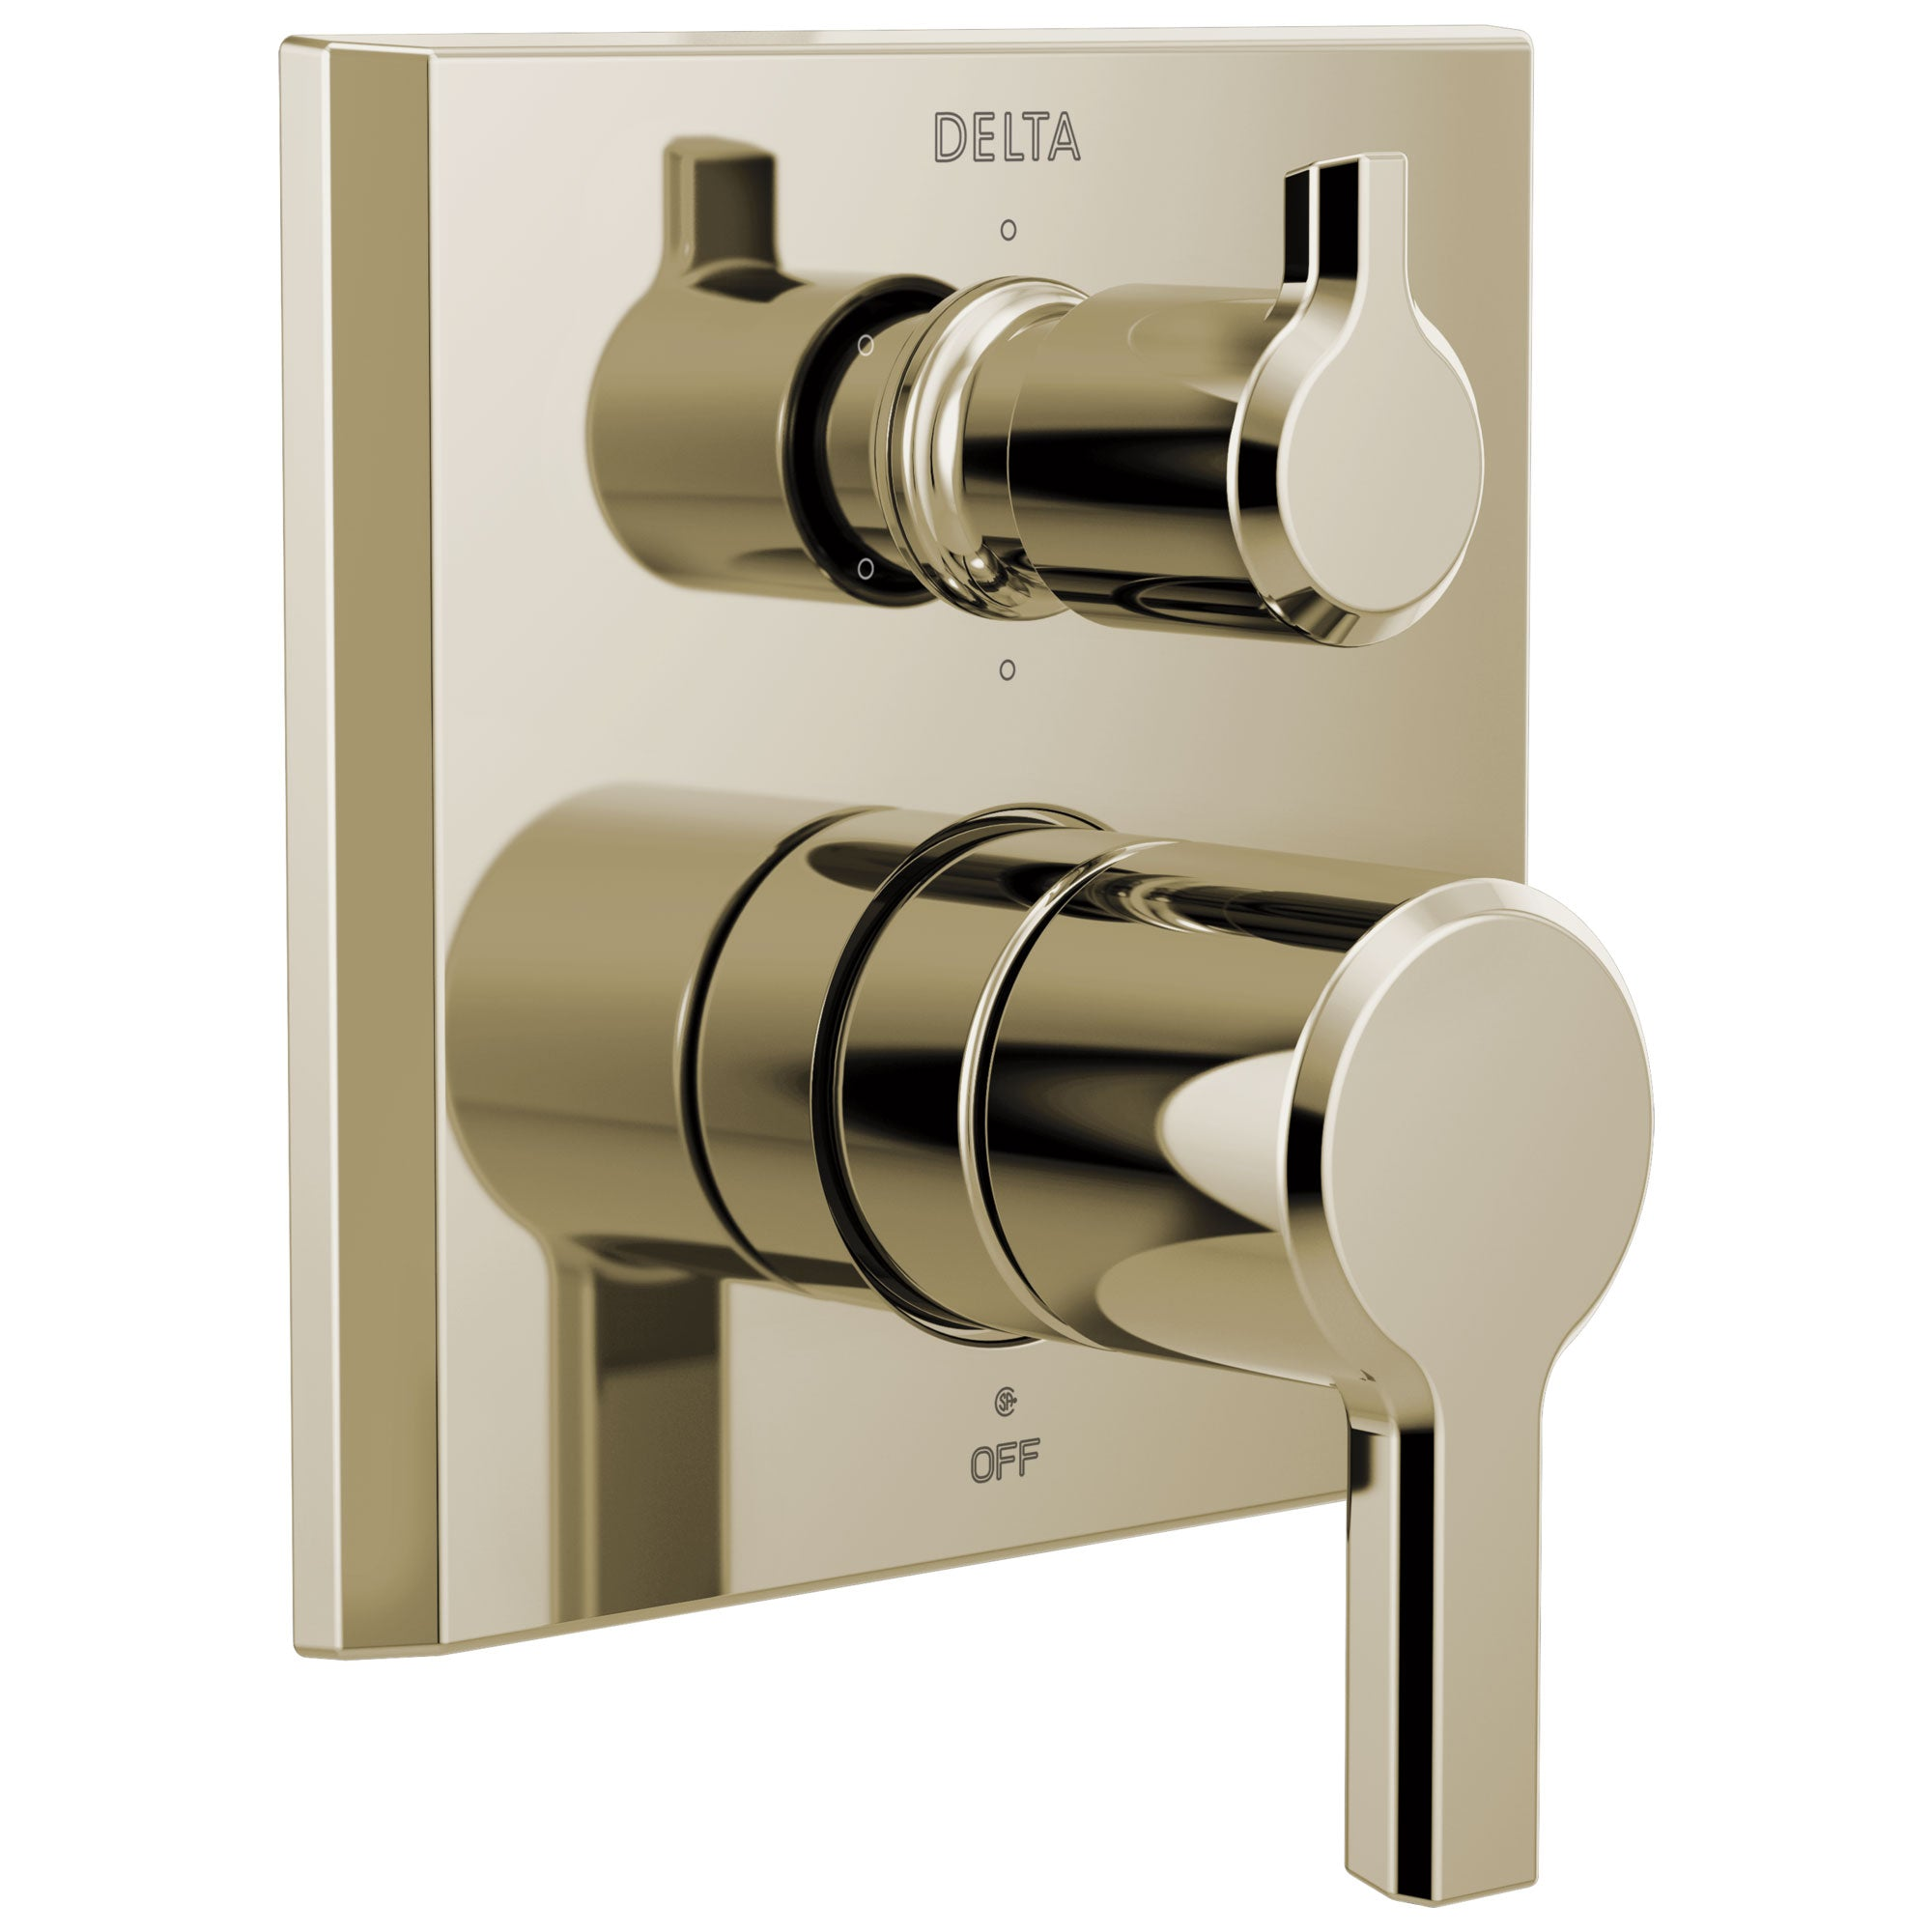 Delta Pivotal Polished Nickel Finish 14 Series Integrated 6 Function Diverter Modern Shower System Control Includes Valve and Handles D3168V